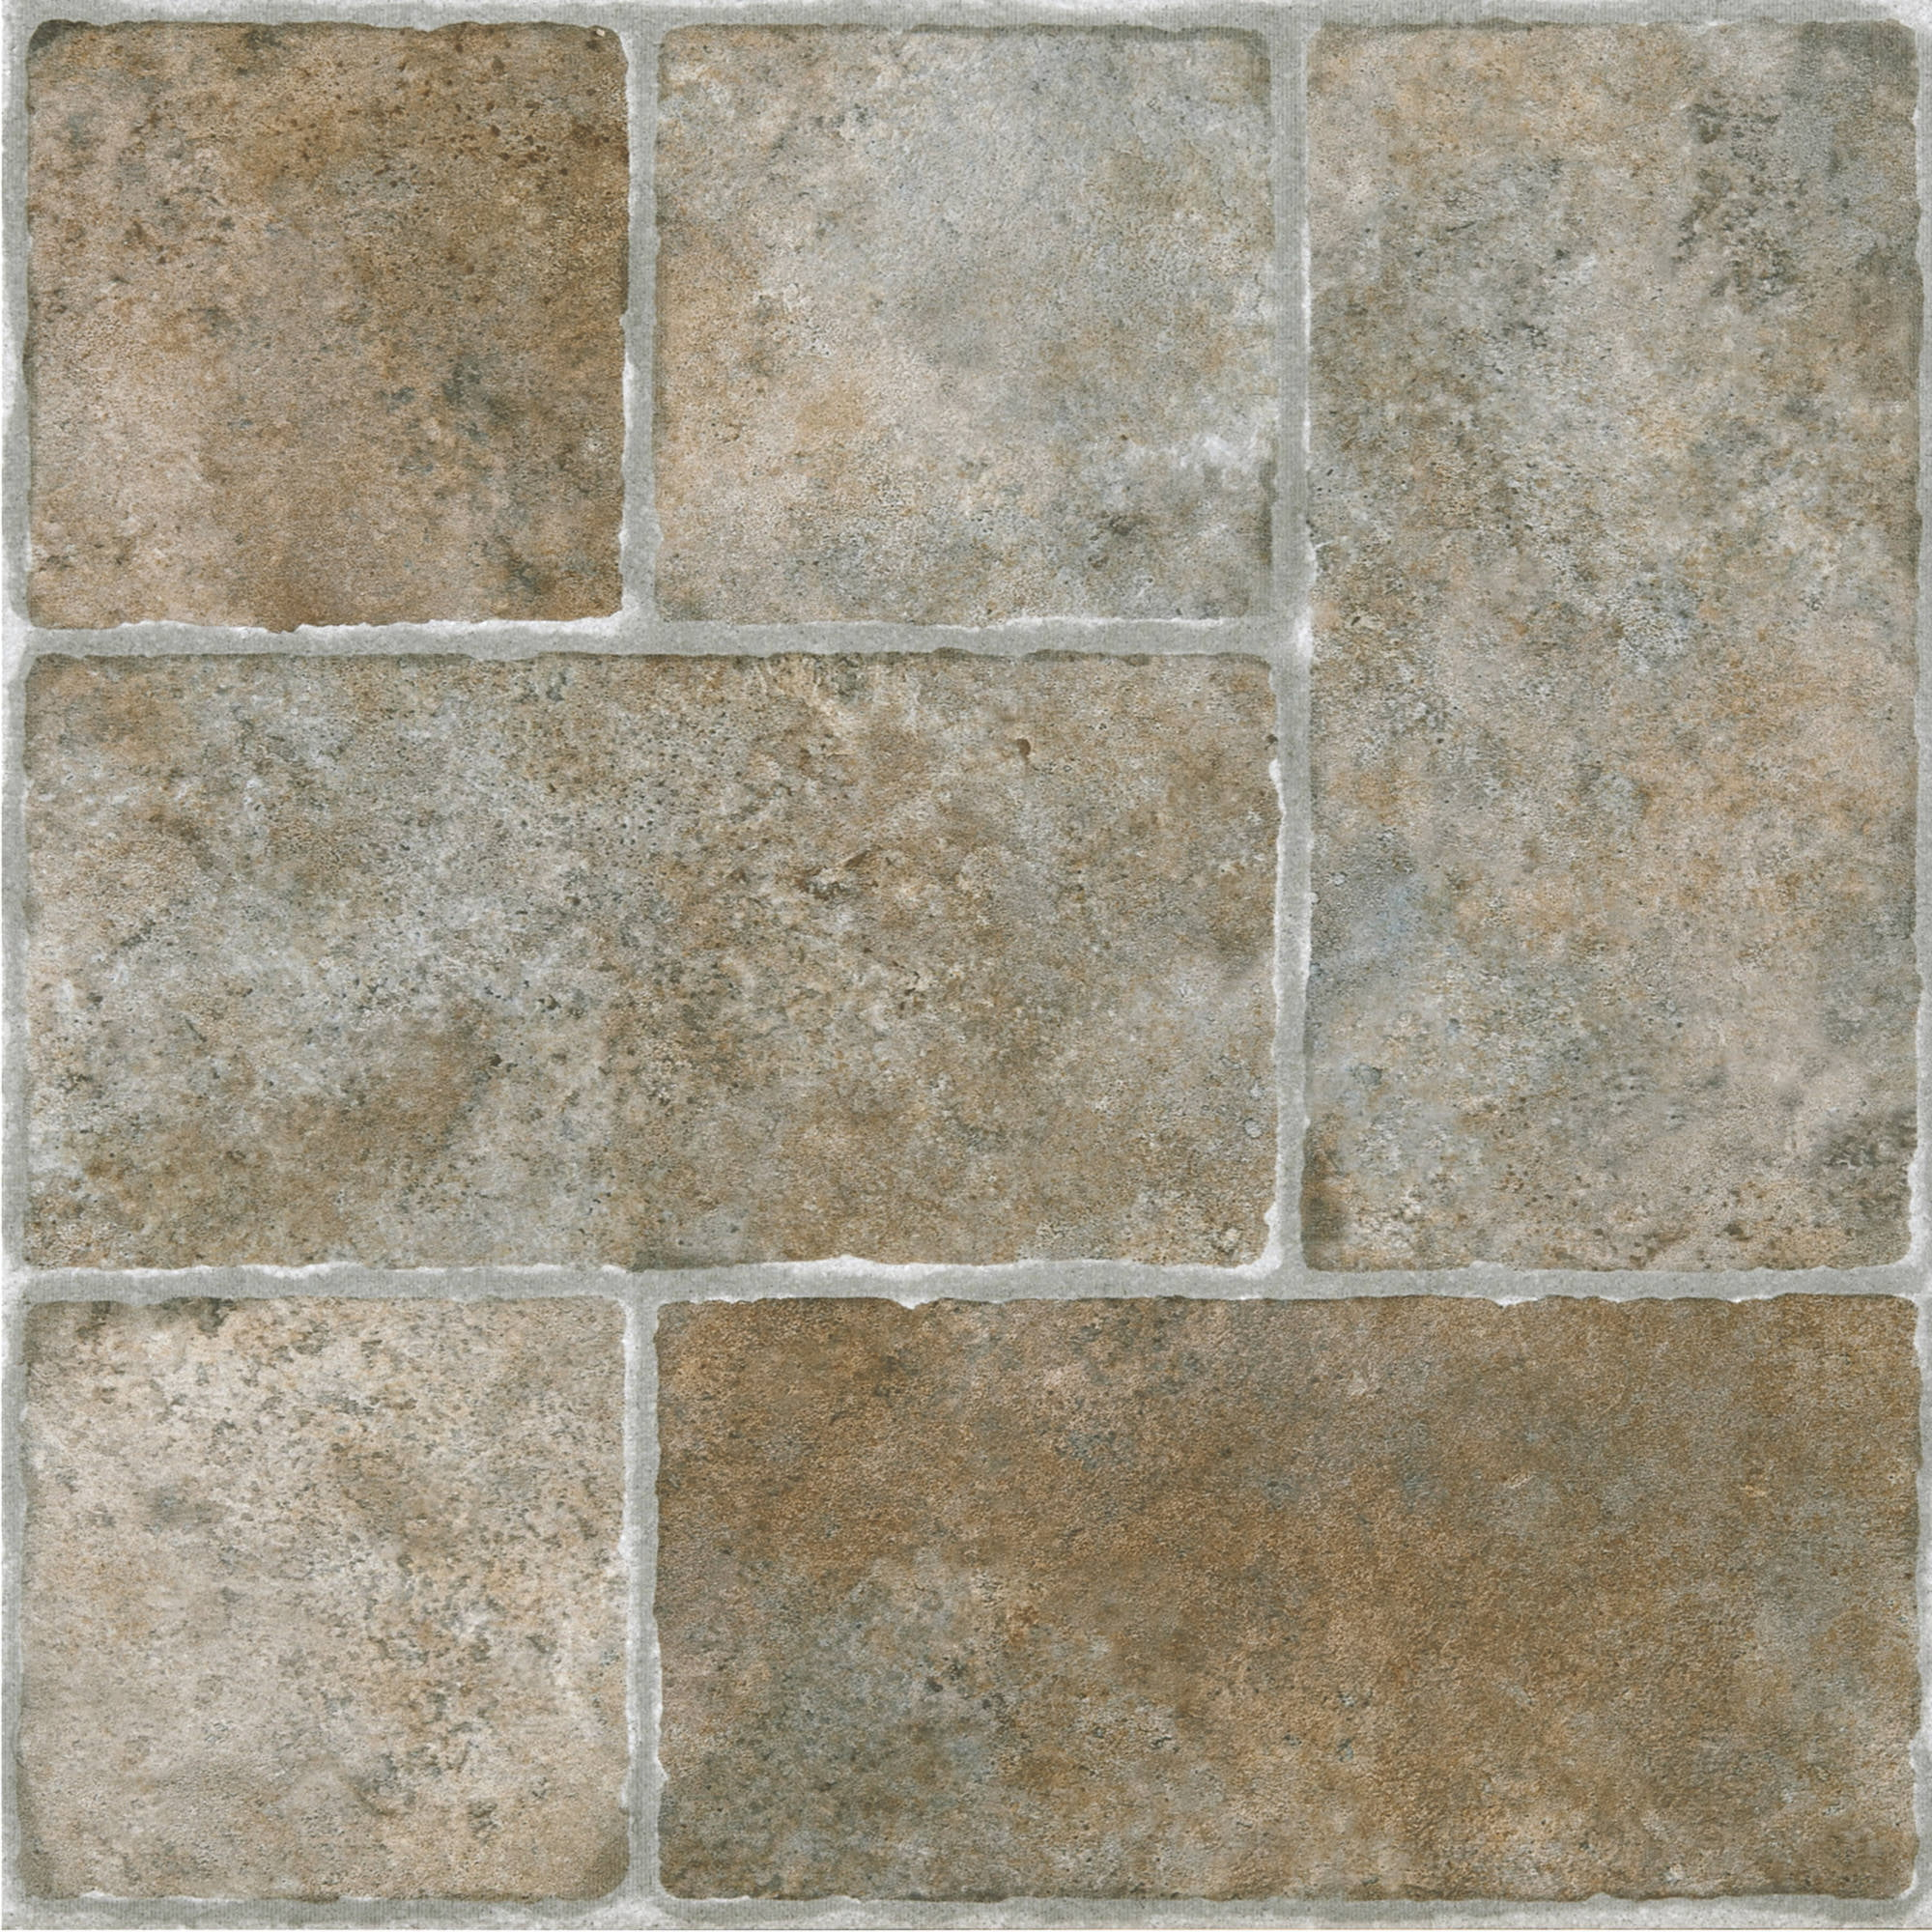 Nexus quartose granite 12x12 self adhesive vinyl floor tile 20 nexus quartose granite 12x12 self adhesive vinyl floor tile 20 tiles20 sqft walmart doublecrazyfo Choice Image